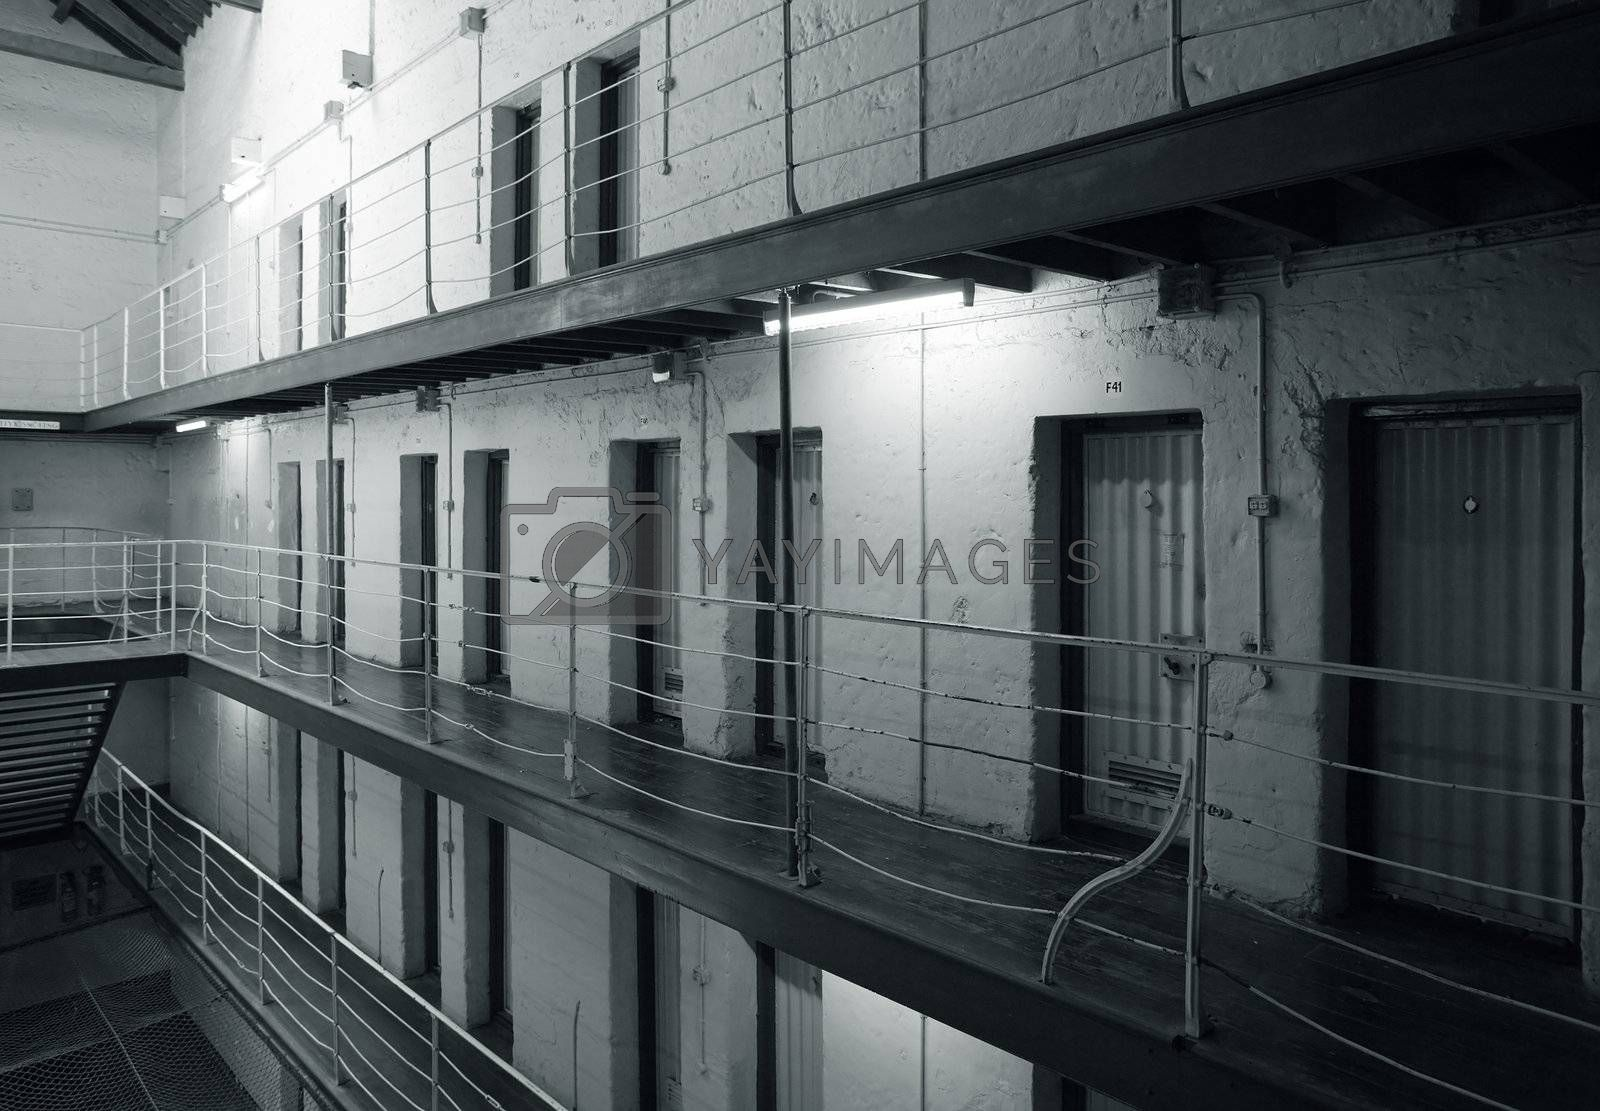 View of prison cell blocks.